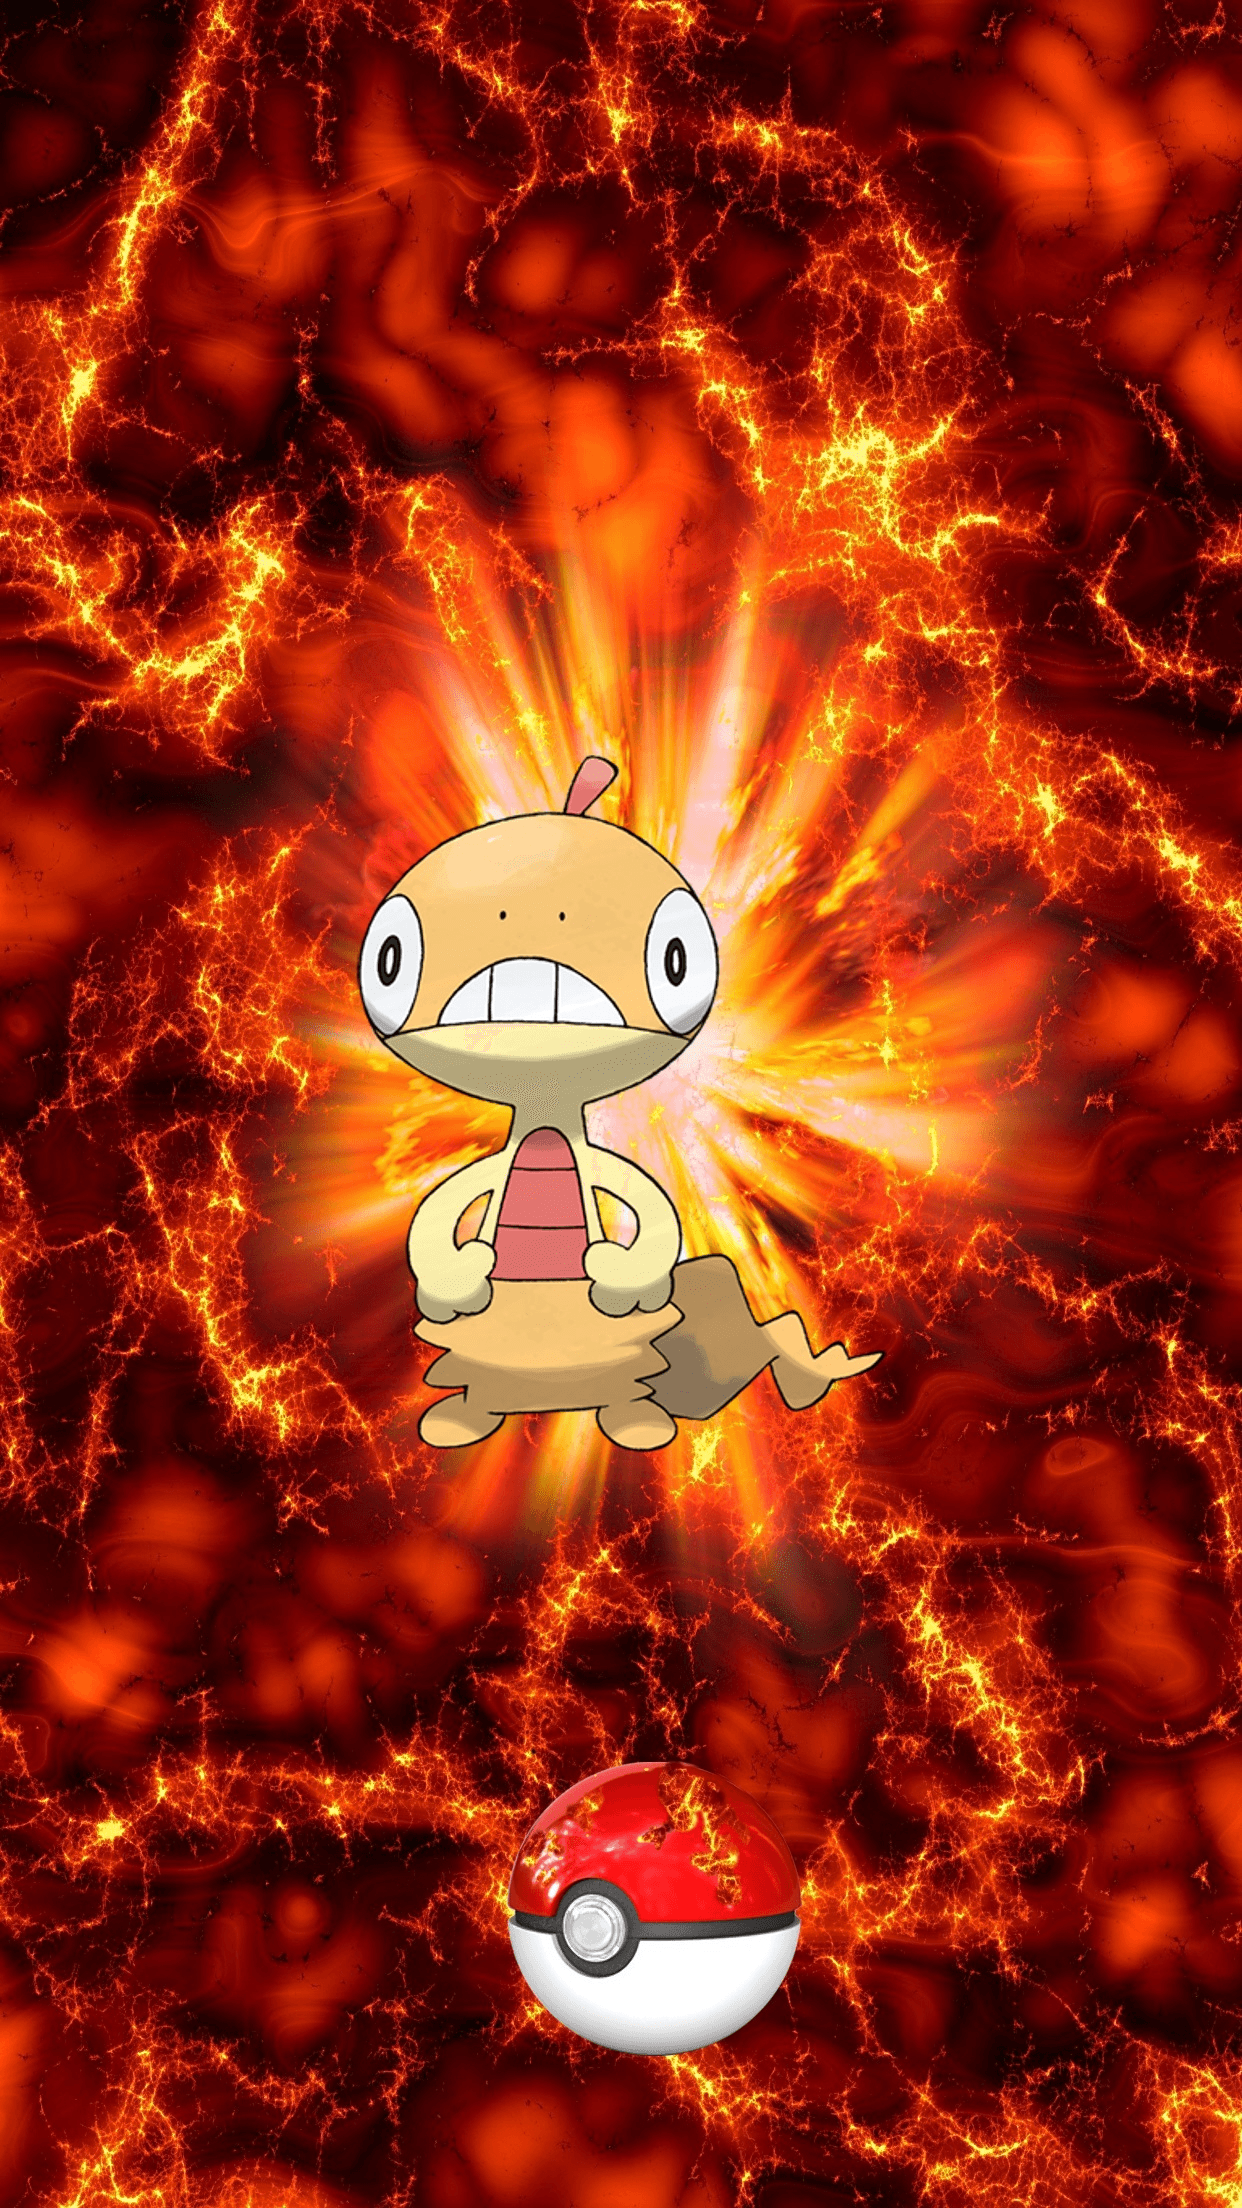 559 Fire Pokeball Scraggy Zuruggu 91 Egg